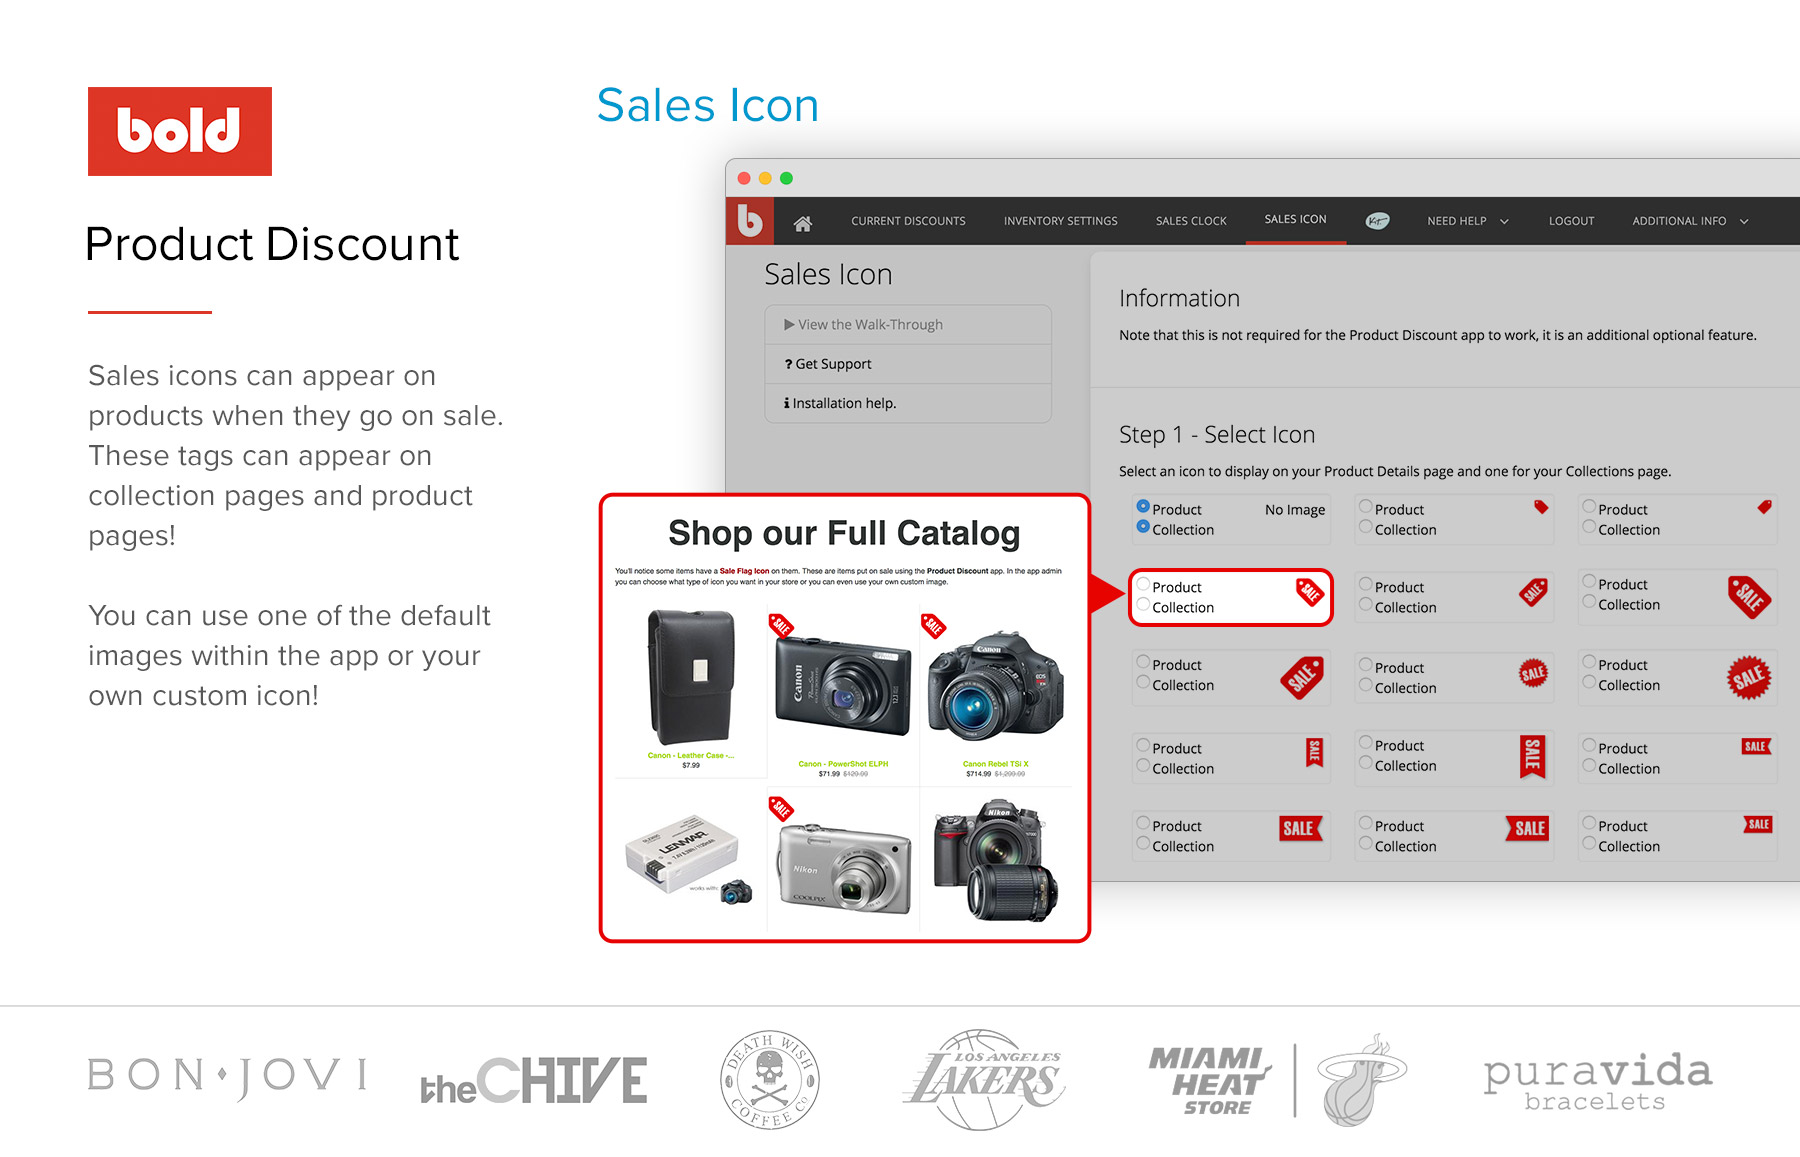 daily deal software sale icon coundown timer for ecommerce website